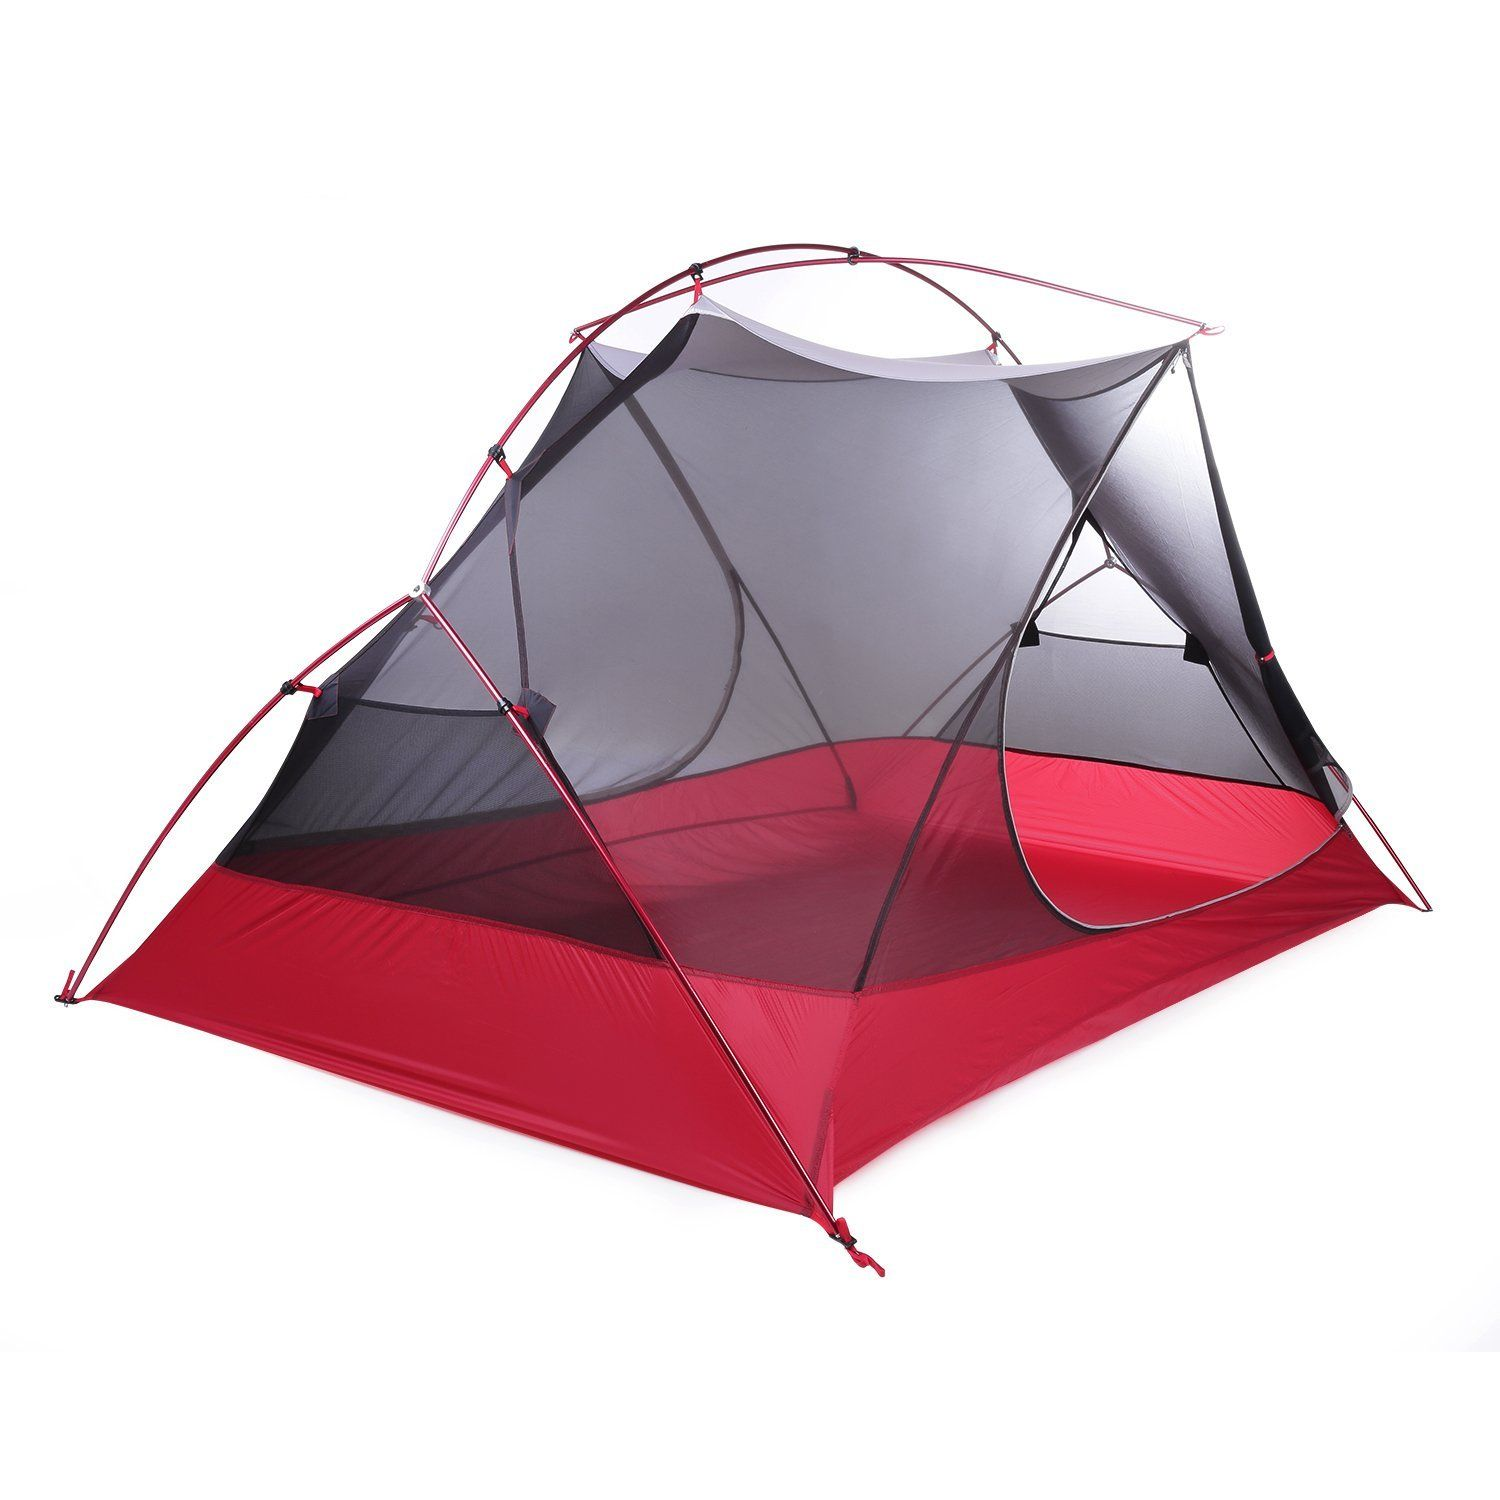 OUTAD Ultra-lightweight Backpacking Tent C&ing Hiking Alpine Tent - 4 Seasons u003du003e  sc 1 st  Pinterest & OUTAD Ultra-lightweight Backpacking Tent Camping Hiking Alpine ...